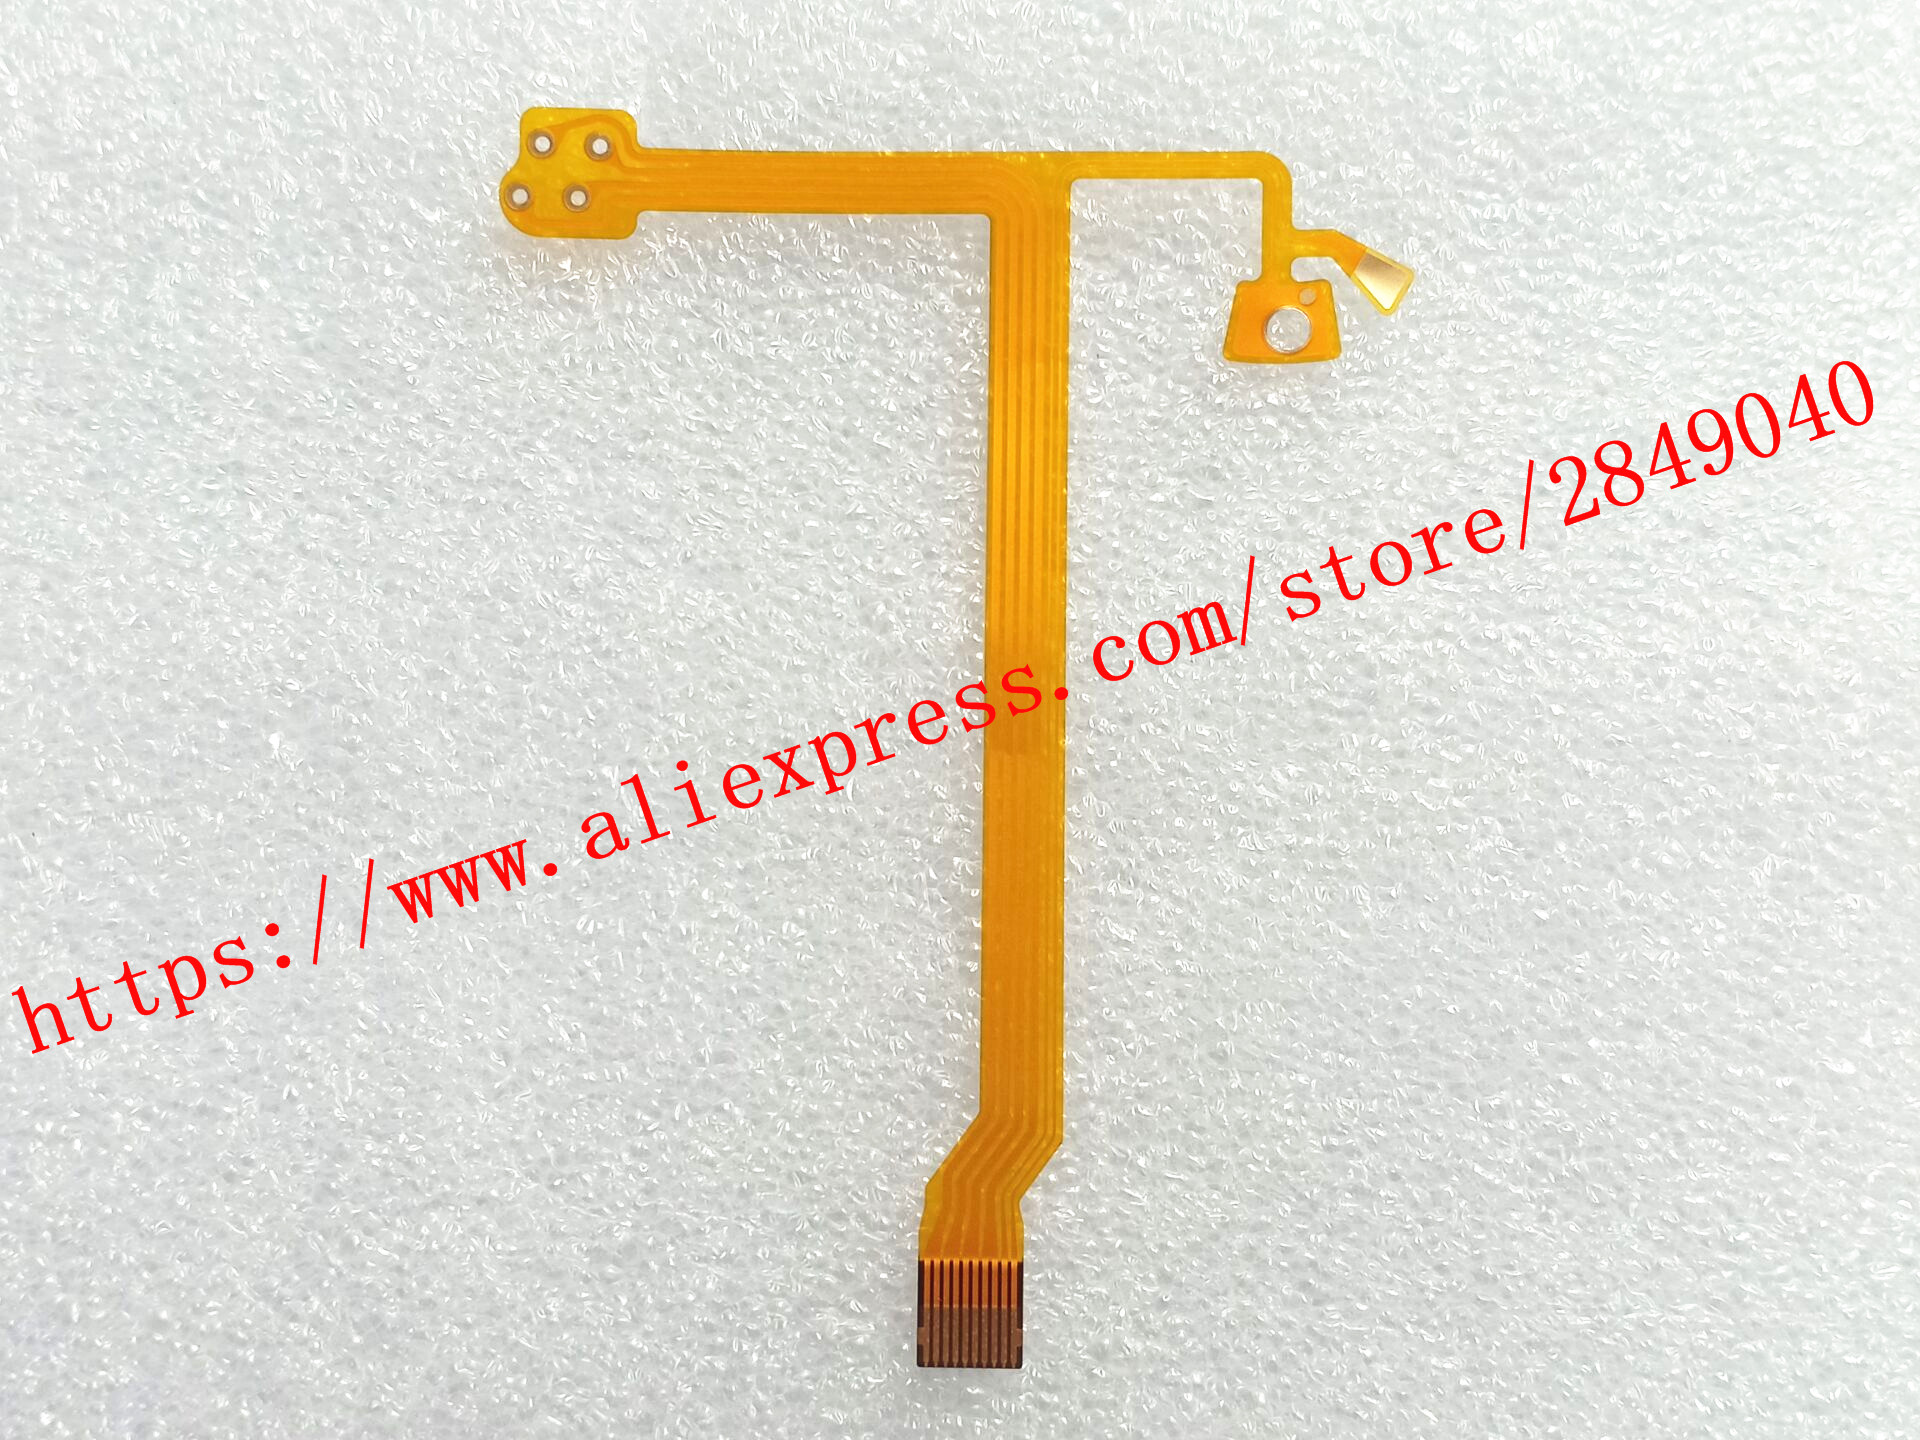 NEW Lens Aperture Flex Cable For Tokina AT-X SD 11-20 Mm 11-20mm F2.8 PRO DX Repair Part